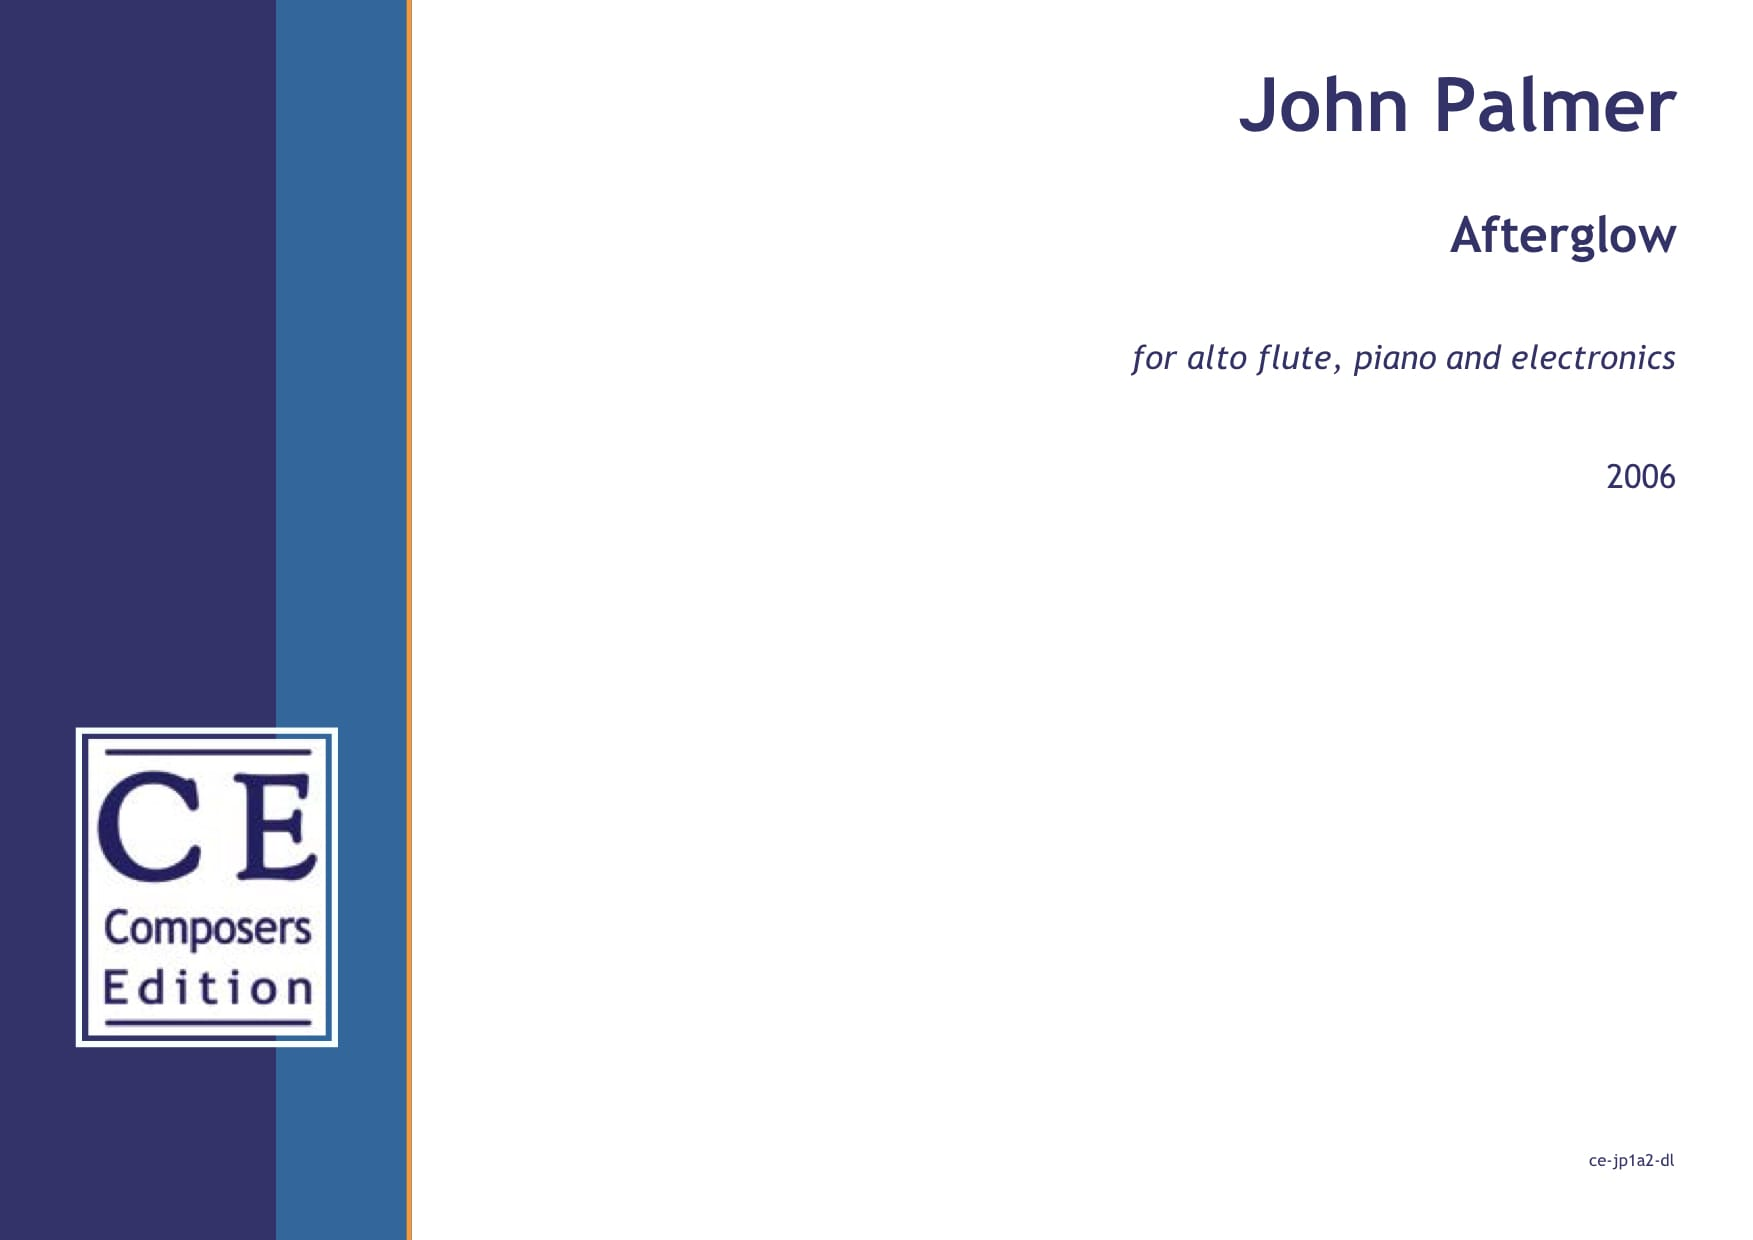 John Palmer: Afterglow for alto flute, piano and electronics